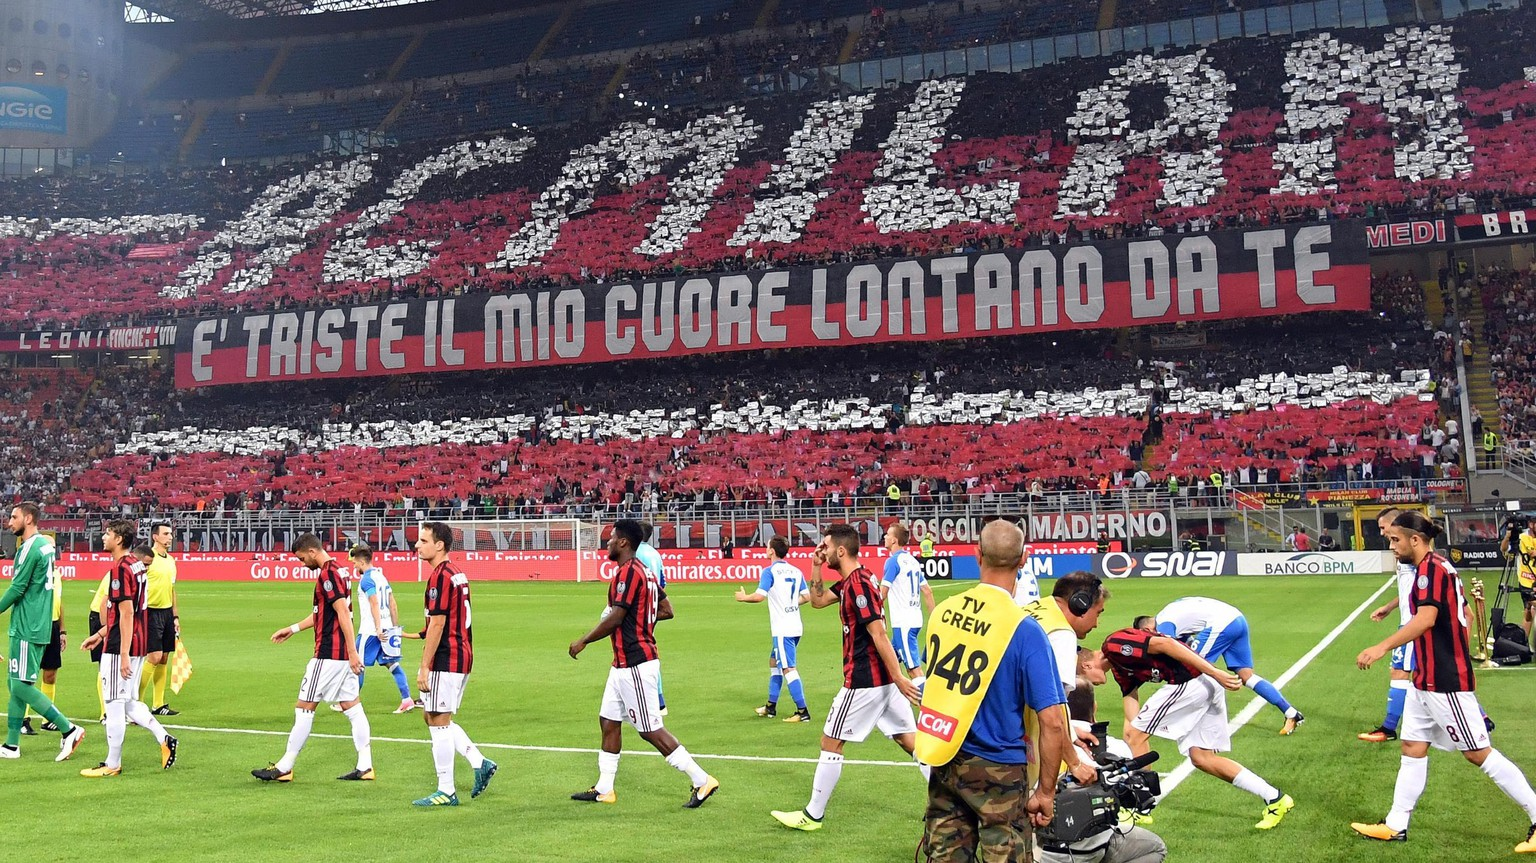 The stadium is crowded with some 65,000 fans as AC Milan and U Craiova enter the field for an Europa League third qualifying round, second leg, soccer match at the San Siro stadium in Milan, Italy, Thursday, Aug. 3, 2017. (Daniel Dal Zennaro/ANSA via AP)